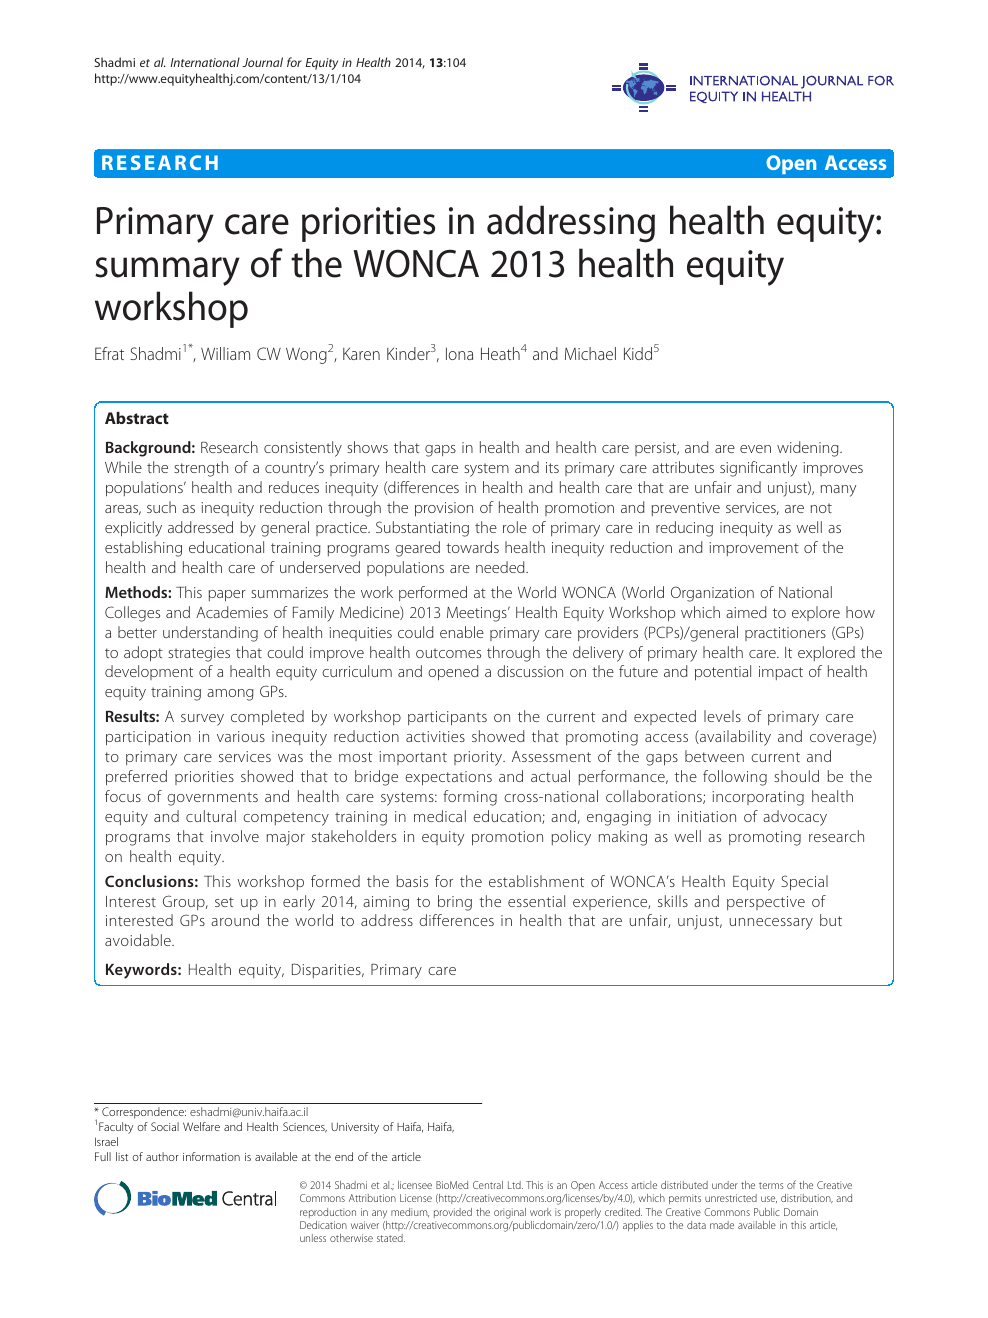 Primary care priorities in addressing health equity: summary